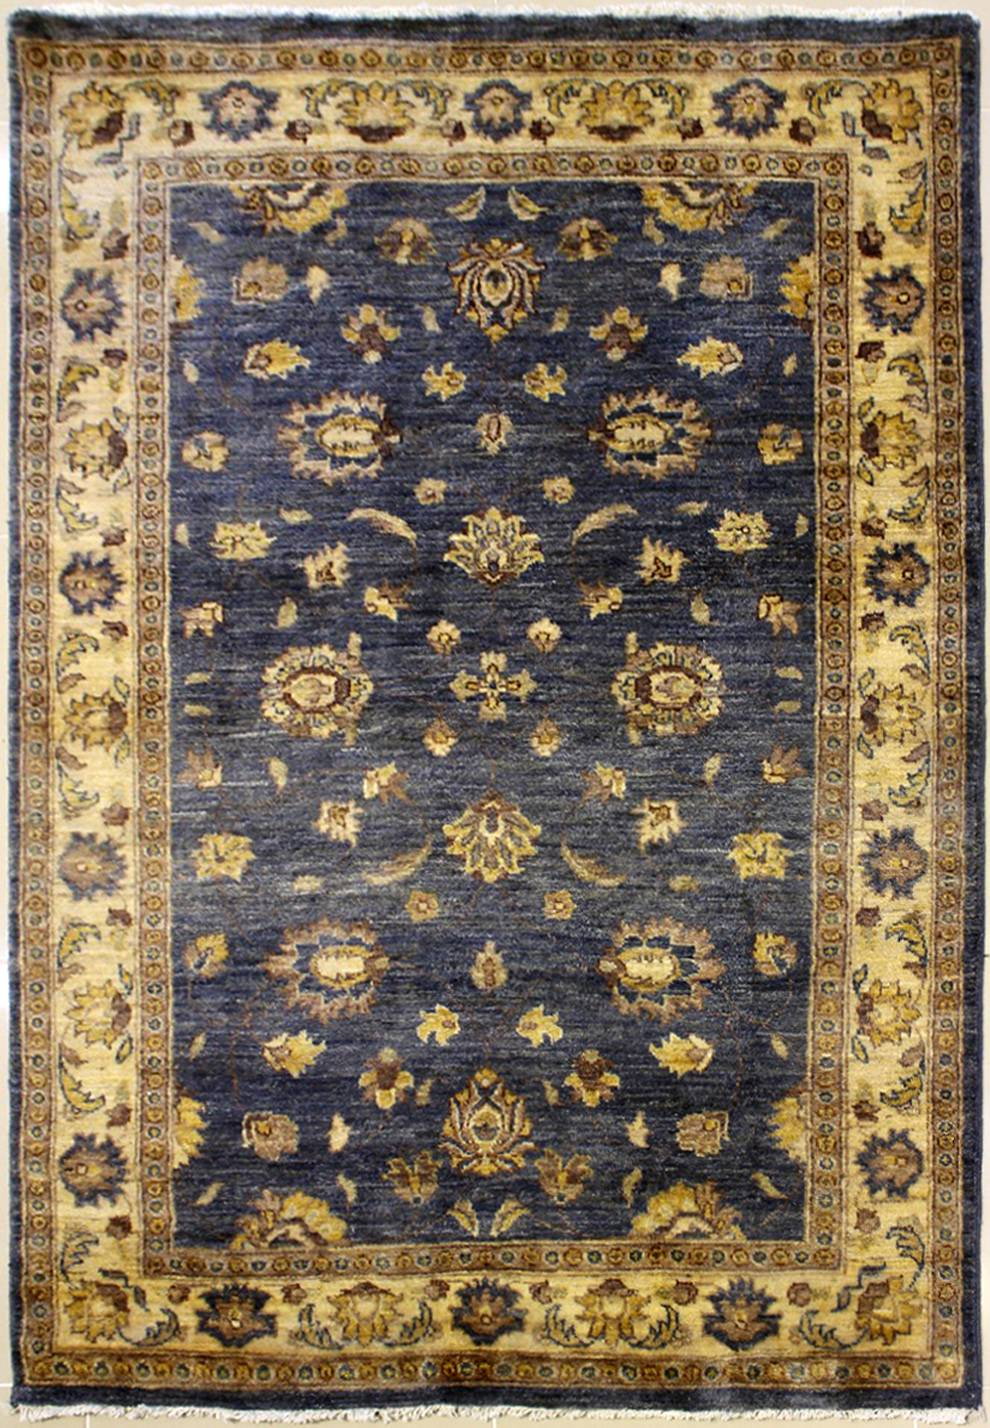 breathtaking artisan turquoise home rc rug under cheap at classic area relieving x lowes outstanding rugs cushty square depot